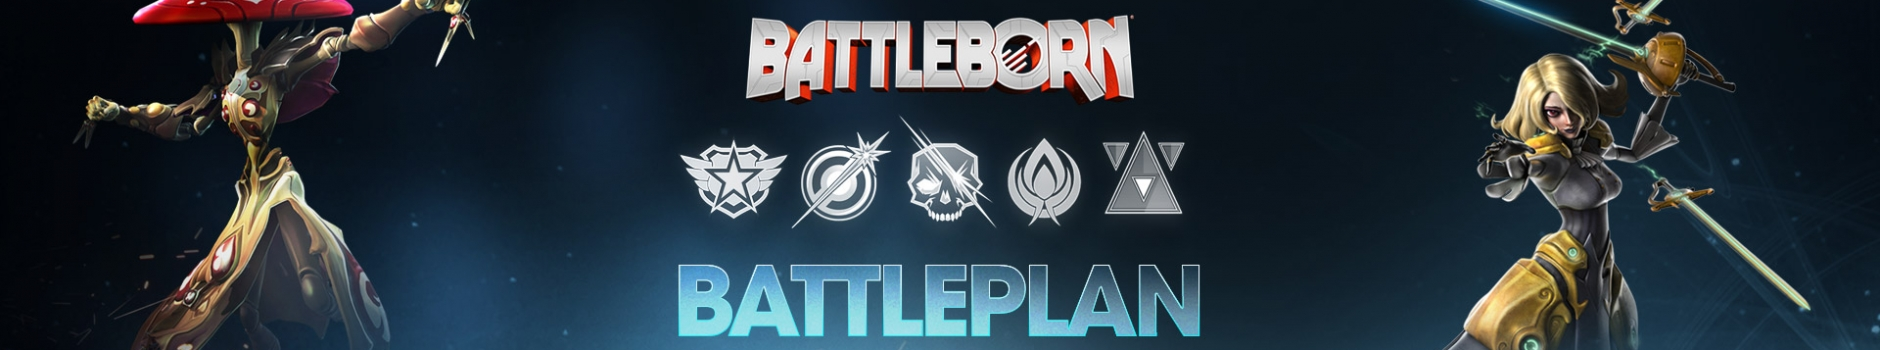 Battleplan 29: Video Recaps, Battleborn Day Stats, and a Big Stream Announcement